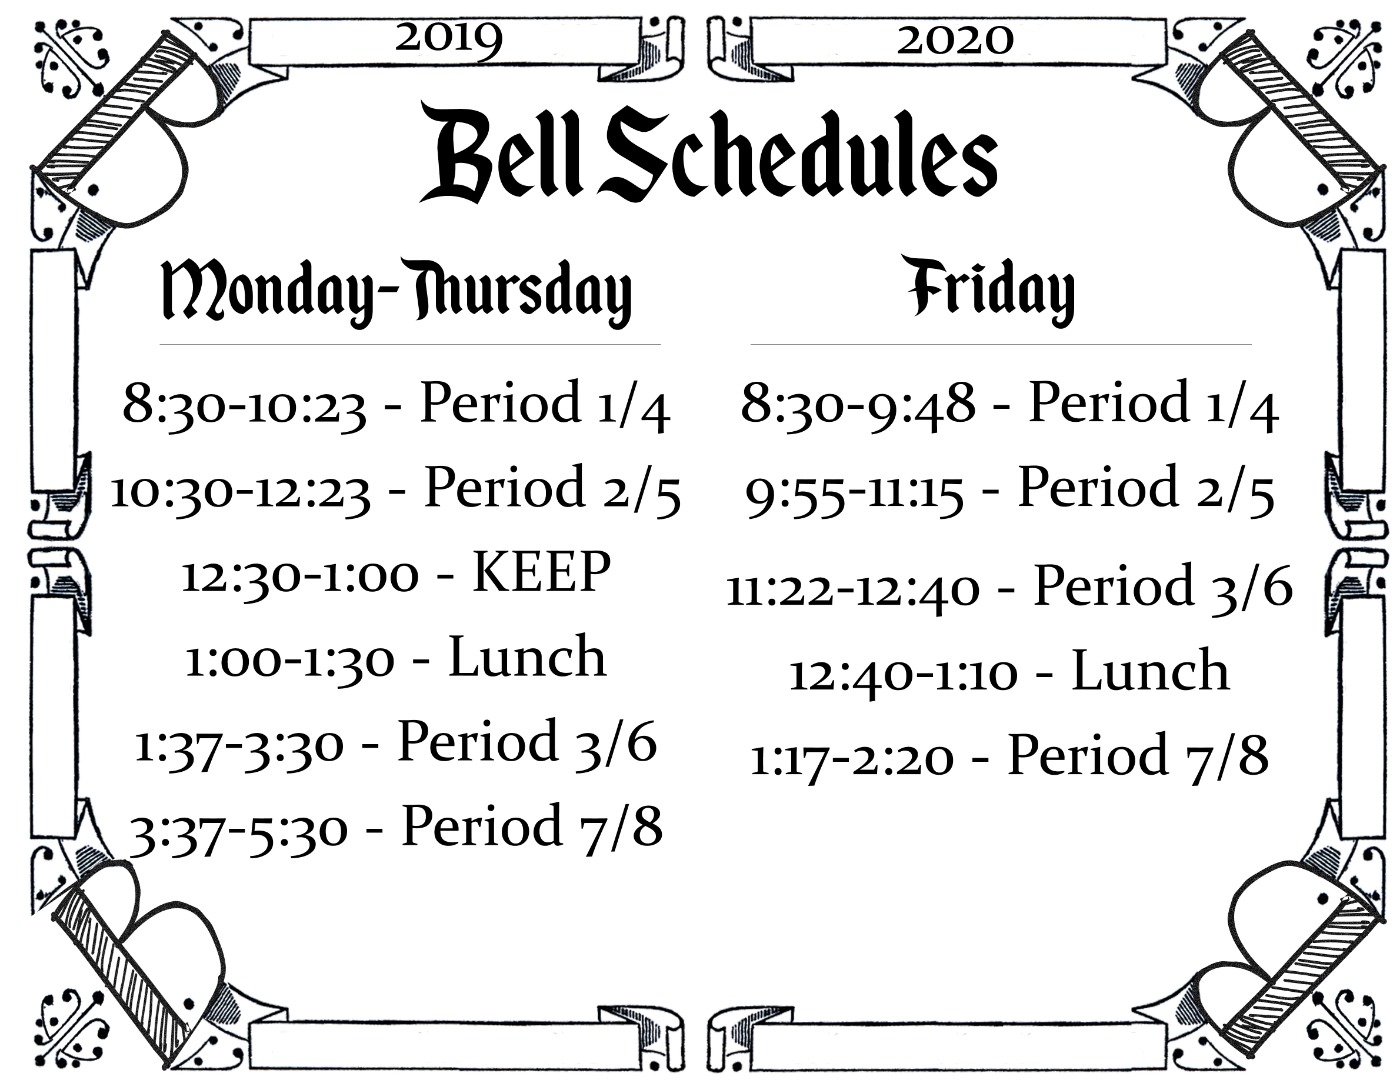 Regular Bell Schedules